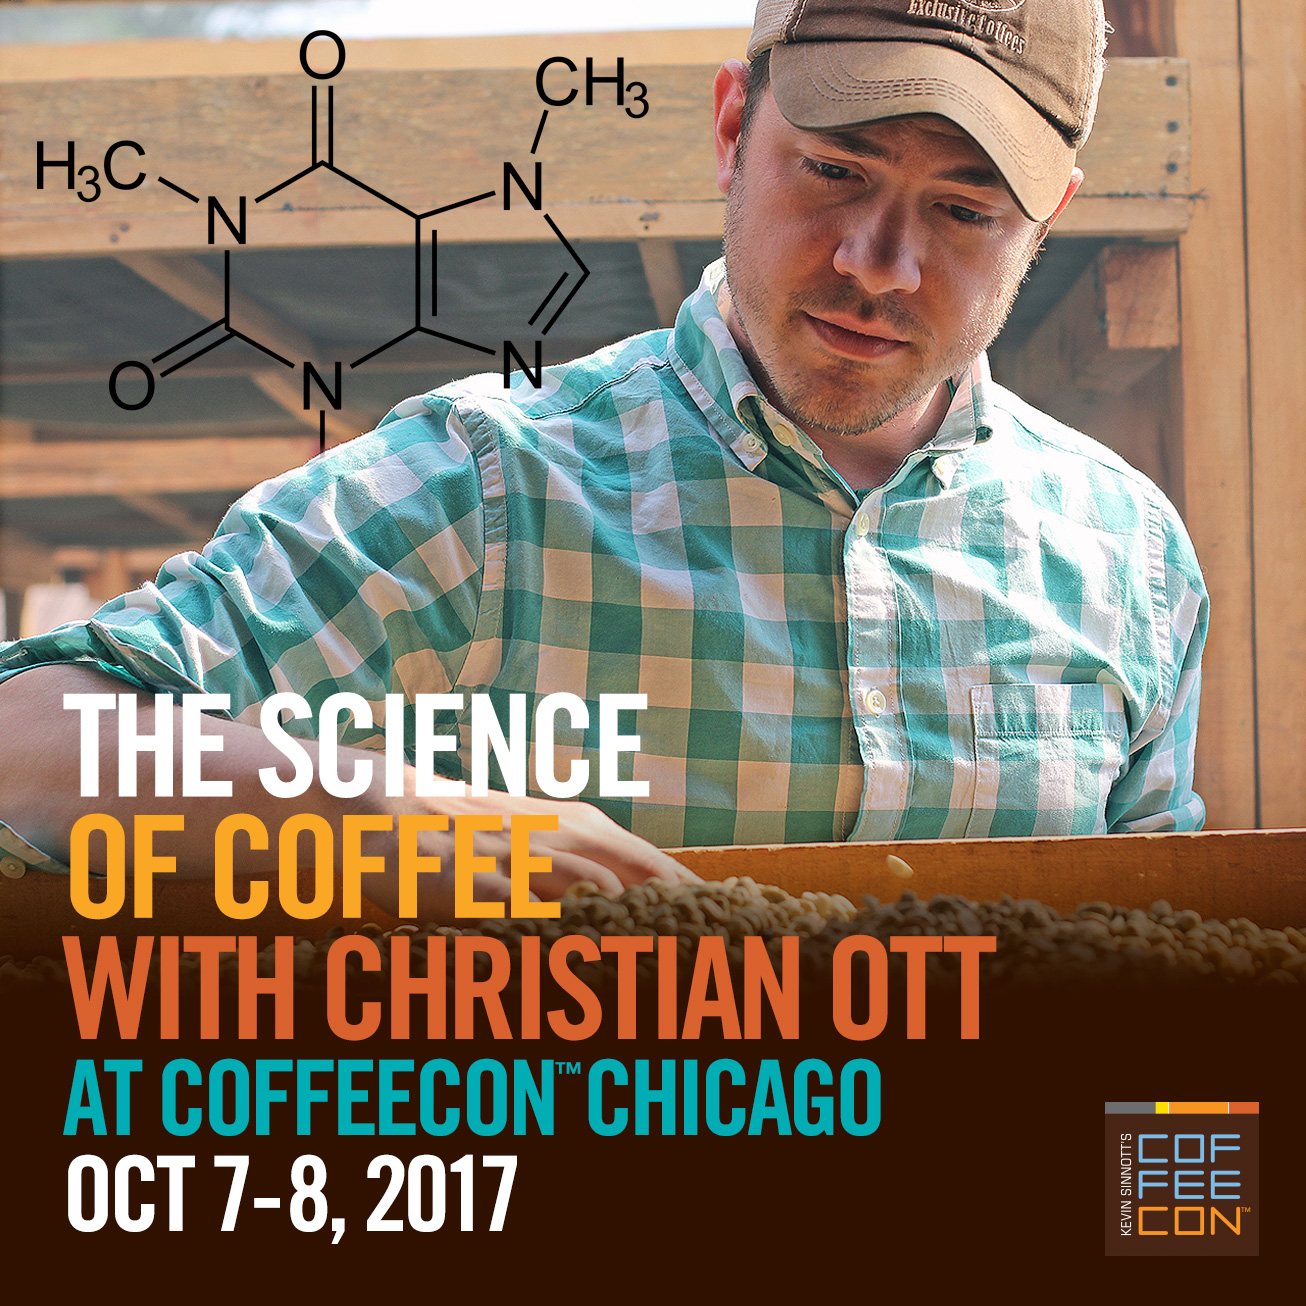 The Science of Coffee with Christian Ott